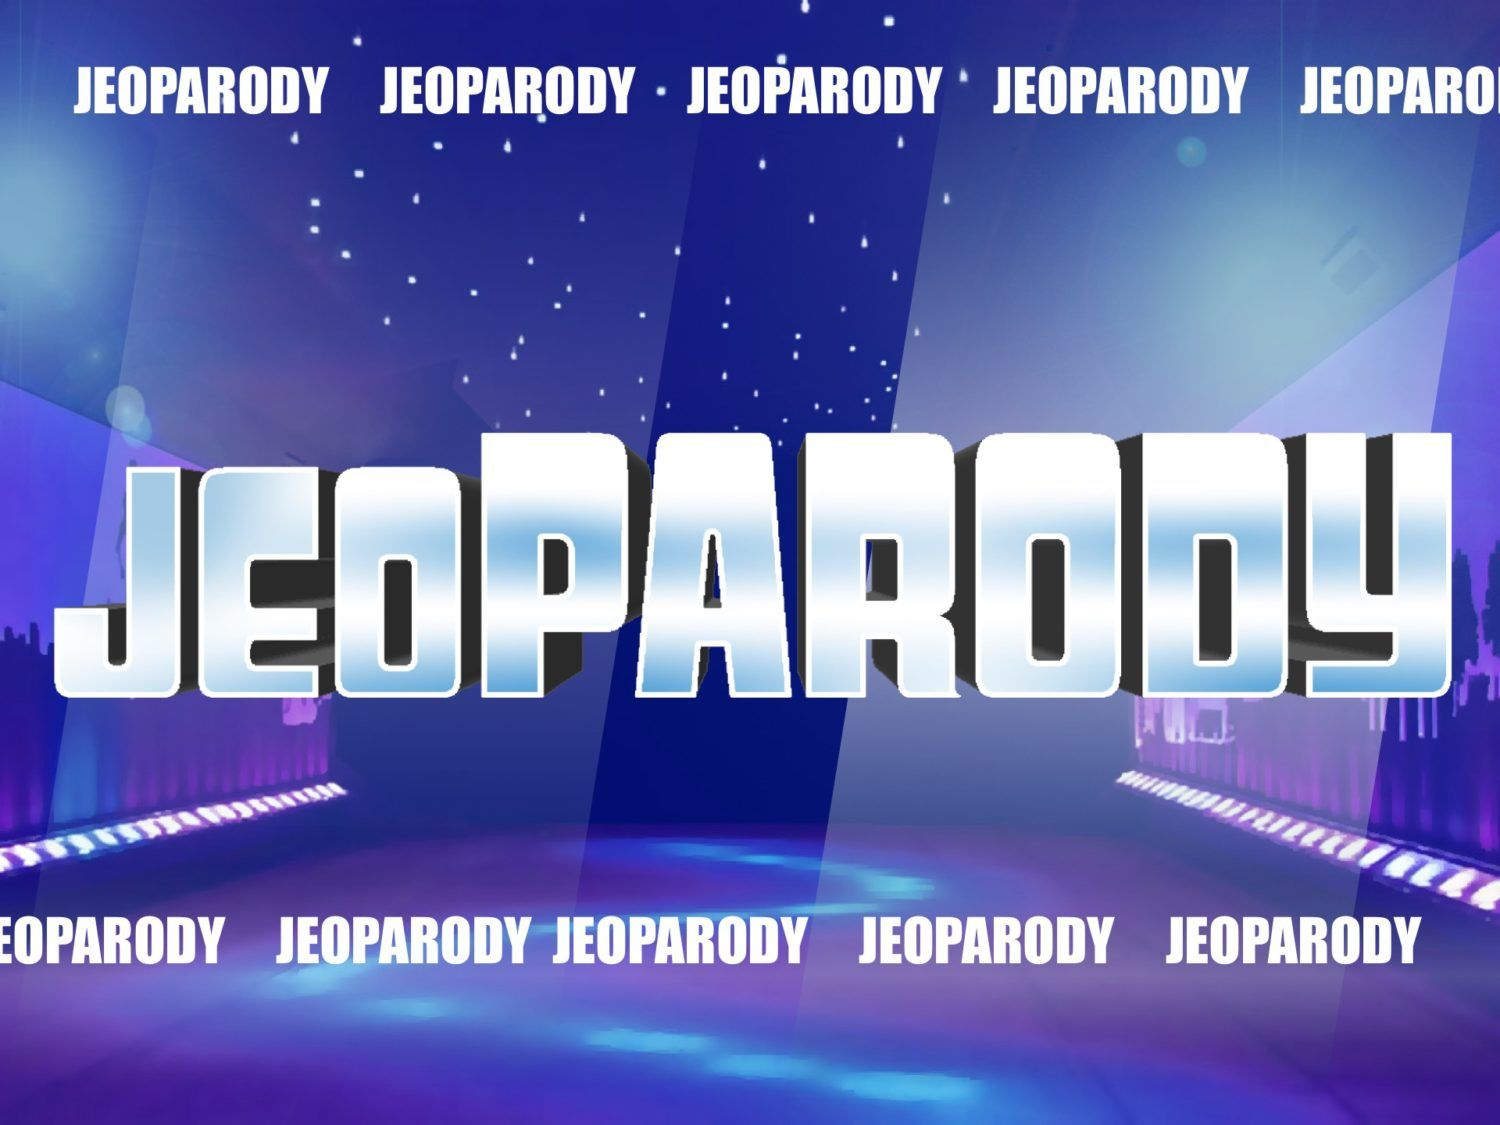 Fully Editable Jeopardy Powerpoint Template Game With Daily Doubles Final Jeopardy Theme M Jeopardy Powerpoint Template Jeopardy Powerpoint Jeopardy Template